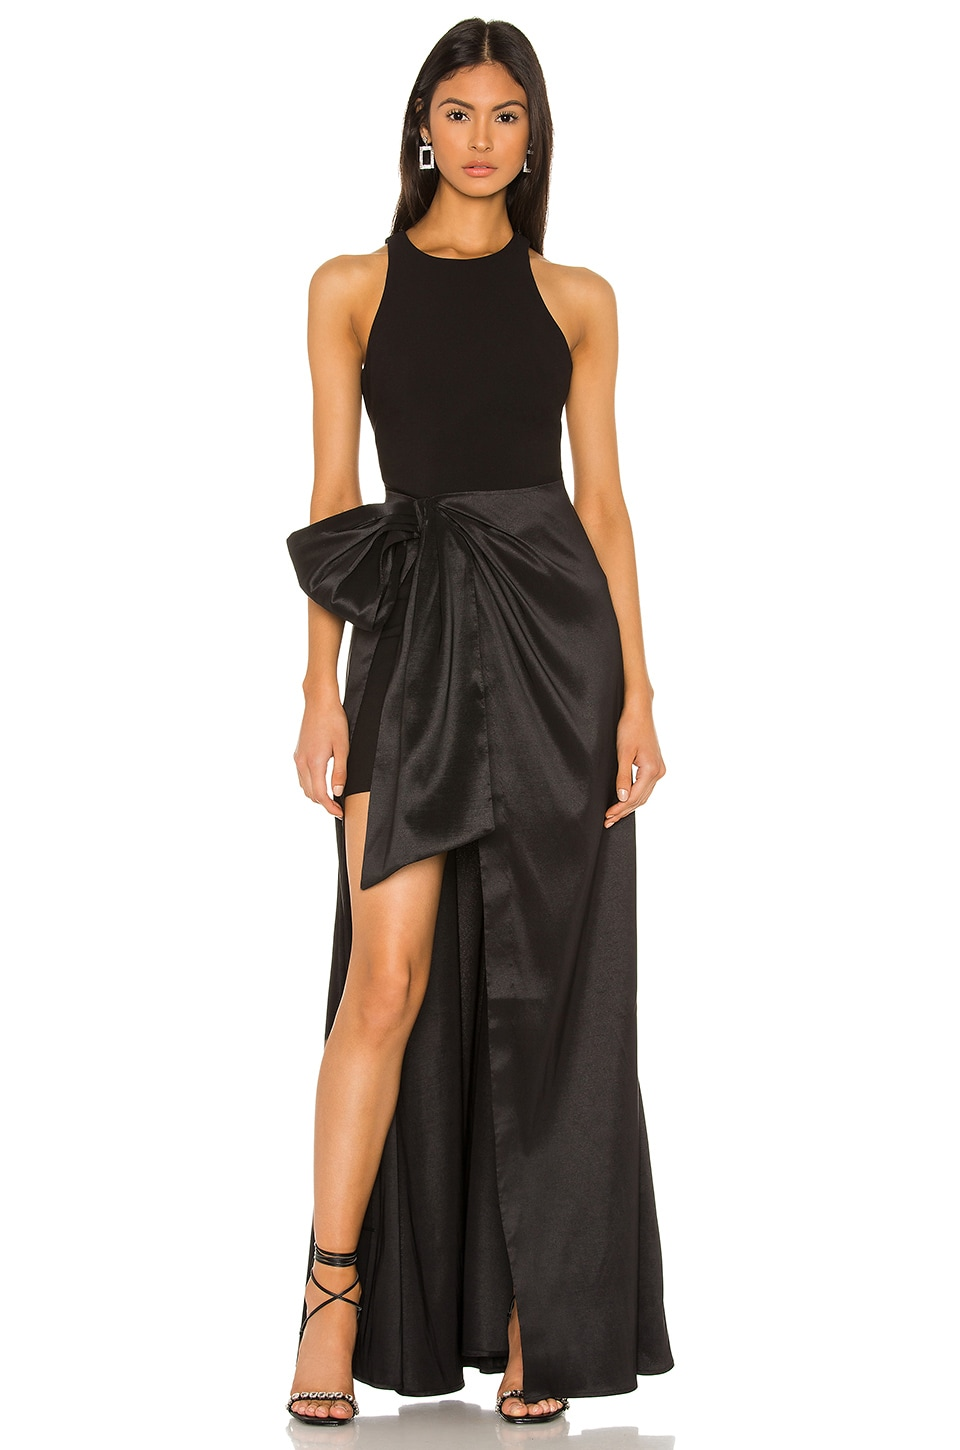 Mena Gown                   LIKELY                                                                                                                             CA$ 455.10 1